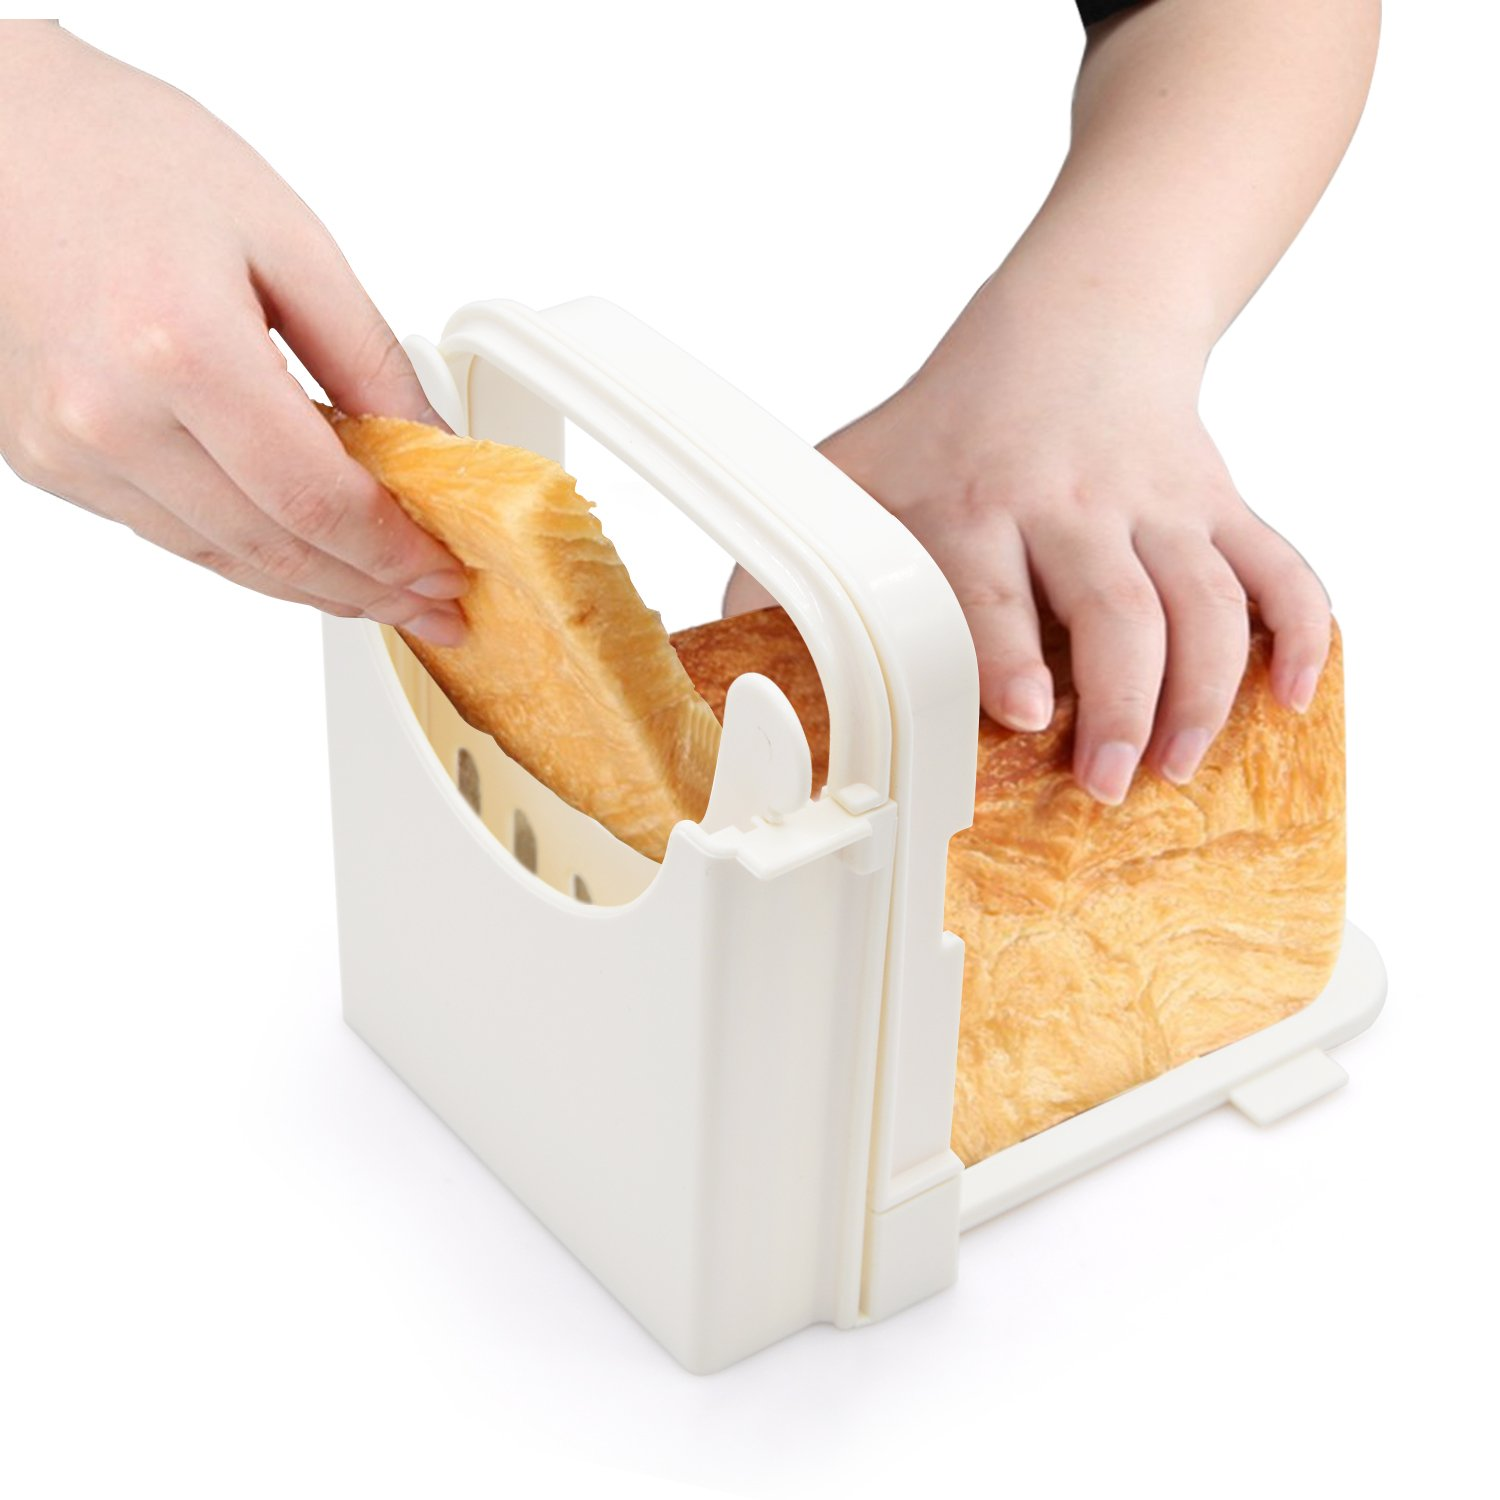 Bread Slicer Toast Slicer Yummy Sam Toast Cutting Guide Bread Toast Bagel Loaf Slicer Cutter Mold Sandwich Maker Toast Slicing Machine Folding and Adjustable with 5 Slice Thicknesses by Yummy Sam (Image #3)